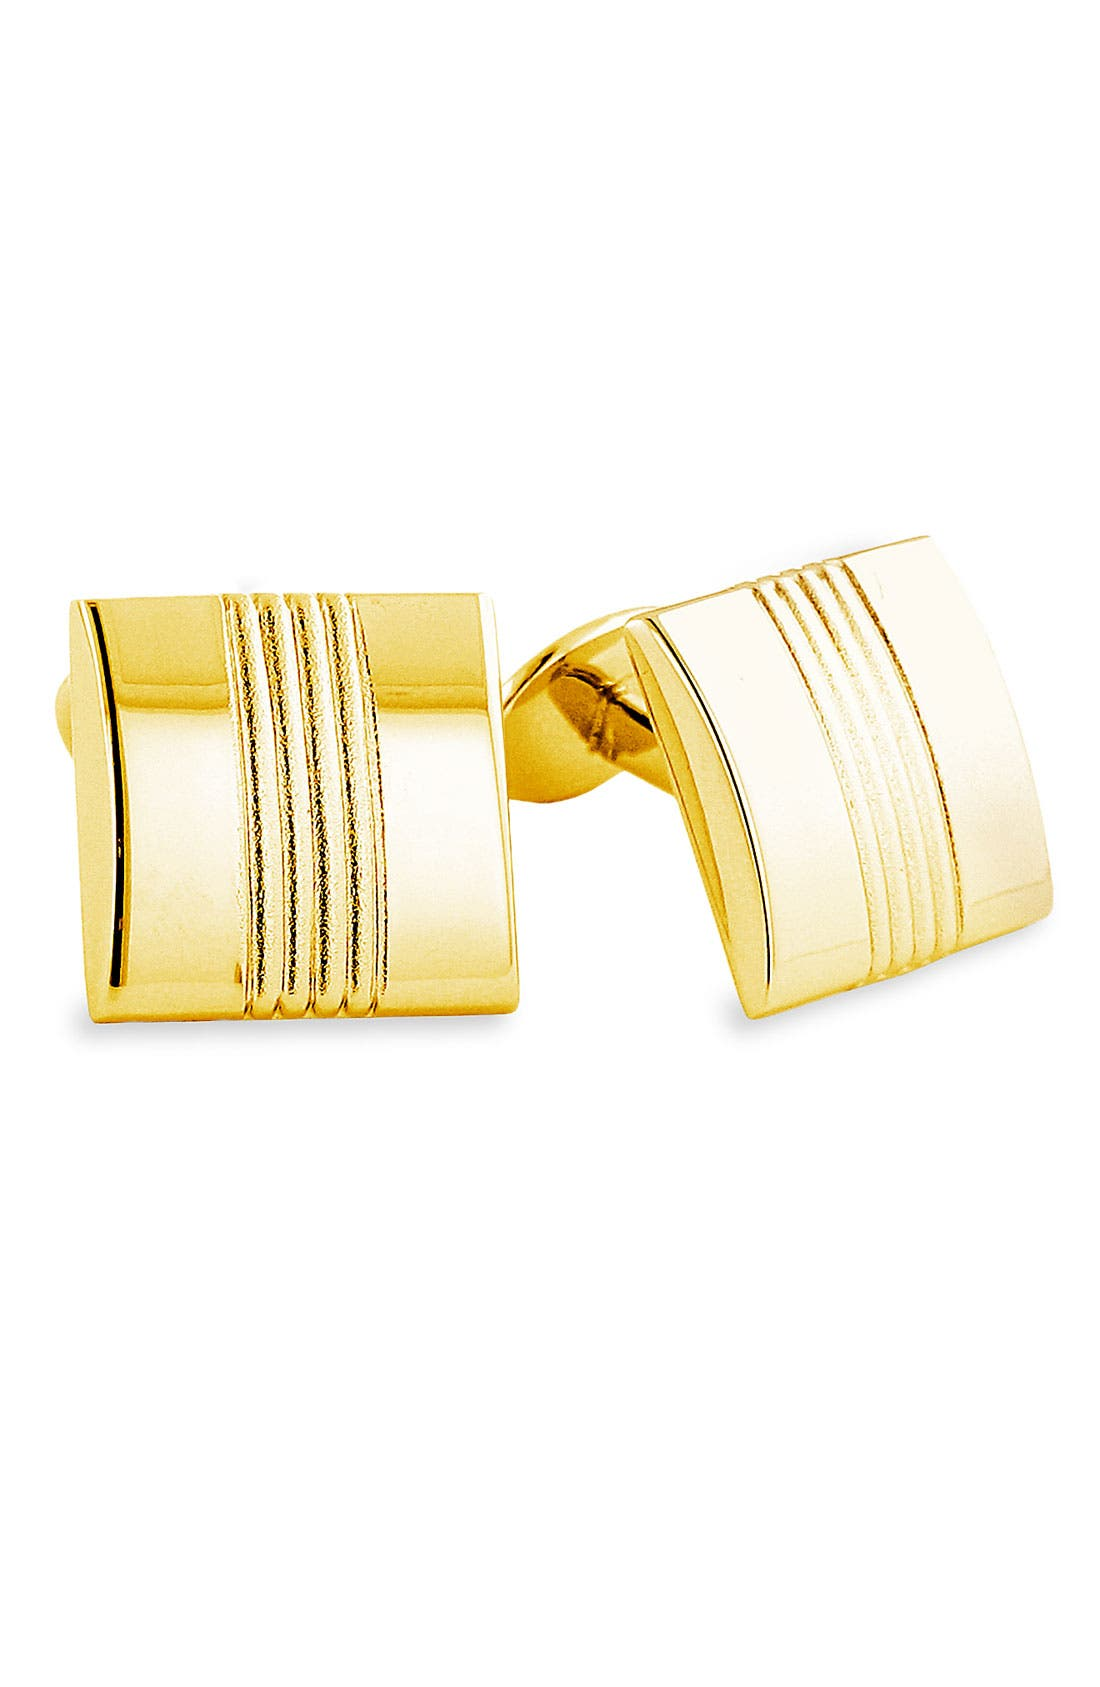 Sterling Silver Cuff Links,                             Main thumbnail 1, color,                             GOLD METALLIC